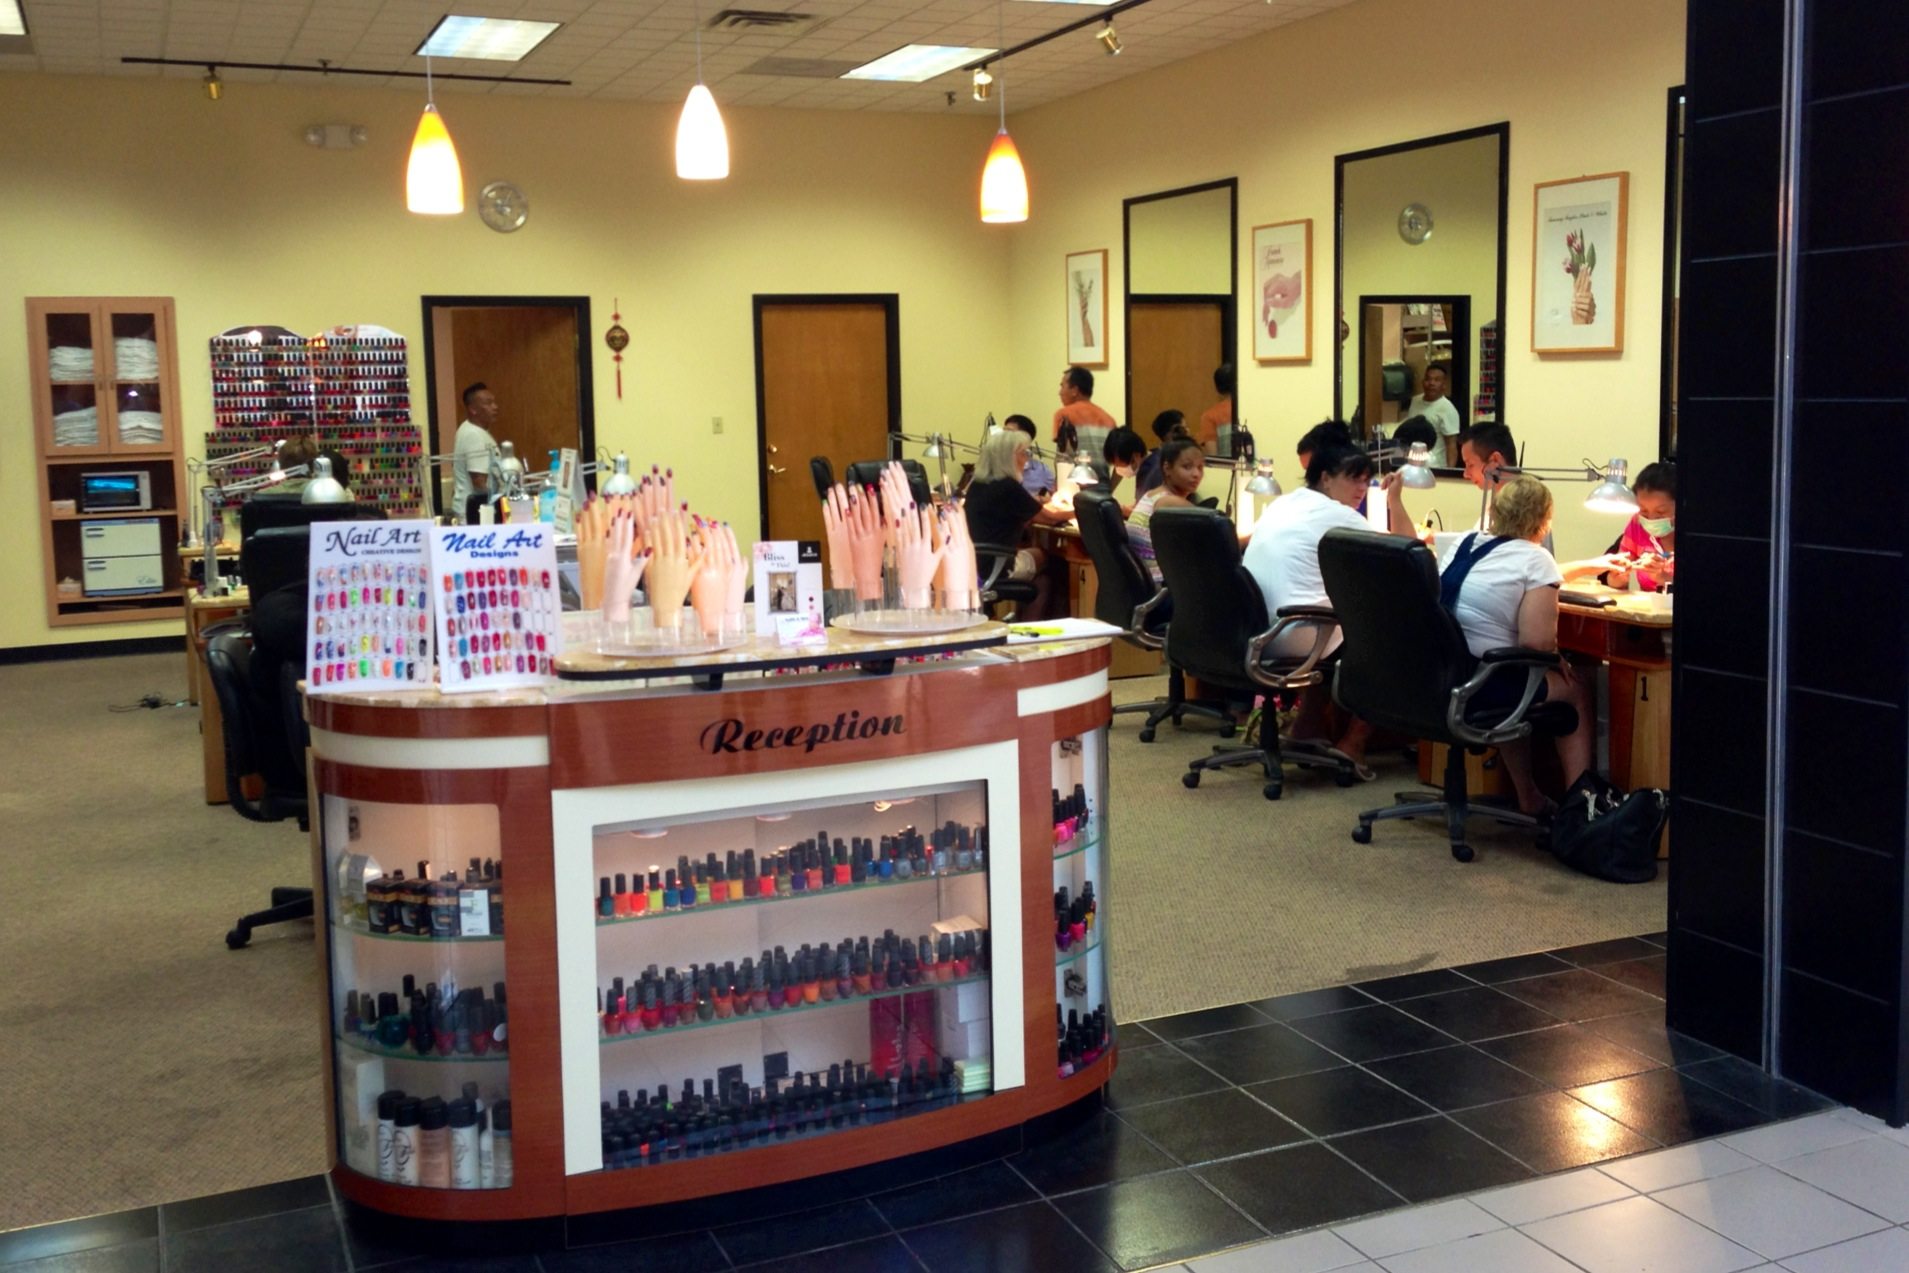 Elite Nails 3801 National Rd E Rm 529, Richmond, IN 47374 - YP.com